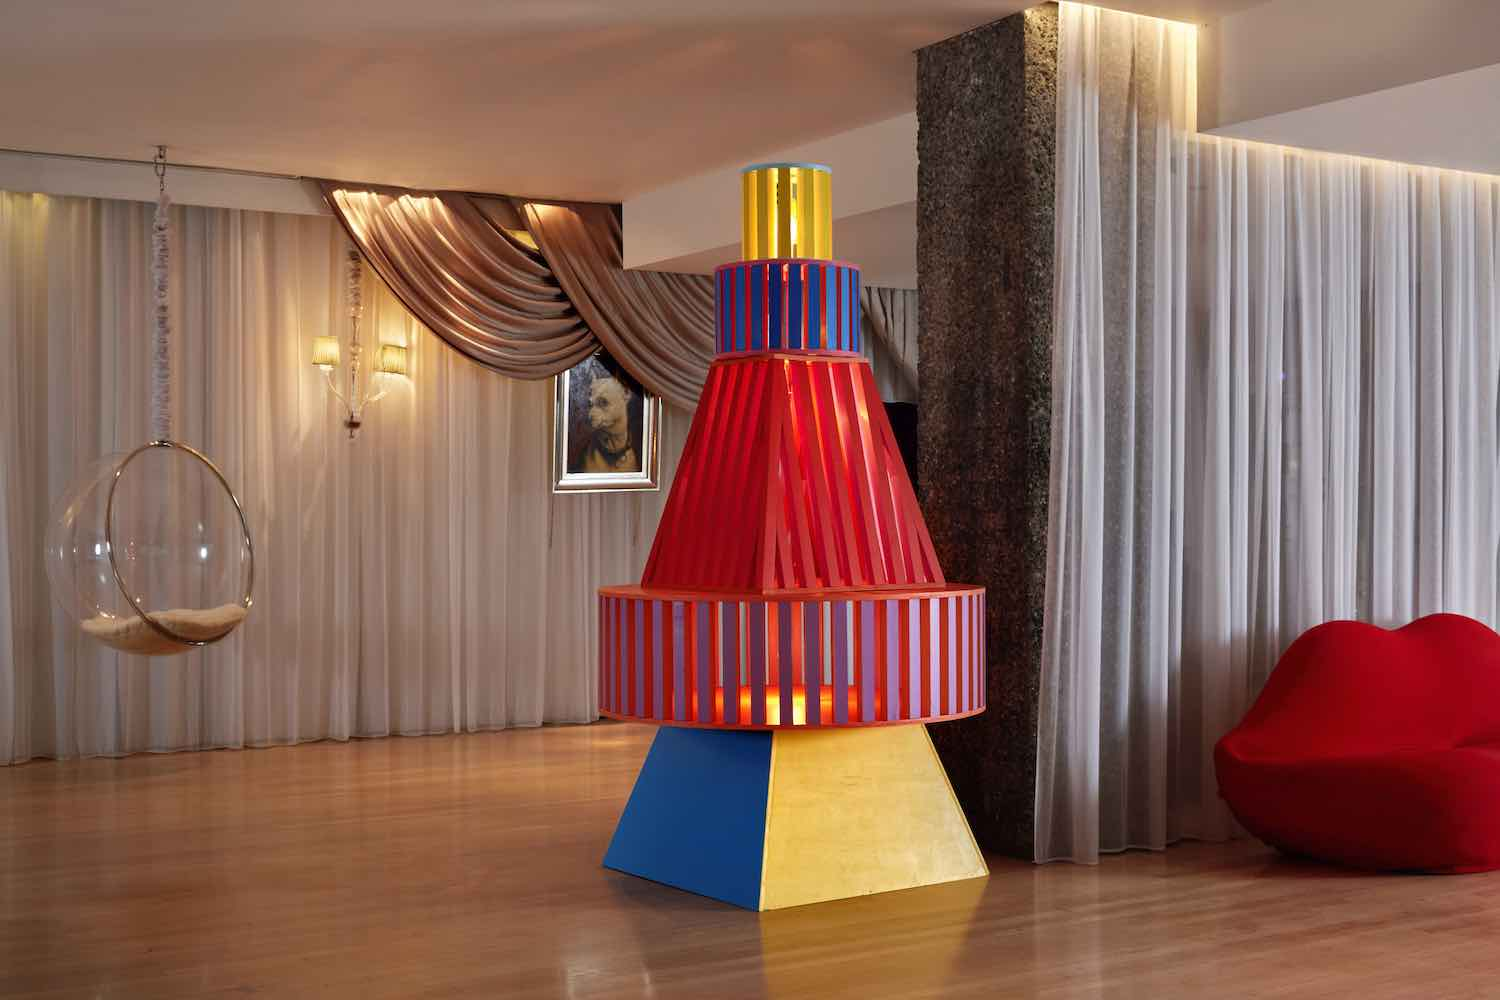 Colourful Christmas Tree by Yinka Ilori for Sanderson London Hotel - Photo by Milo Brown